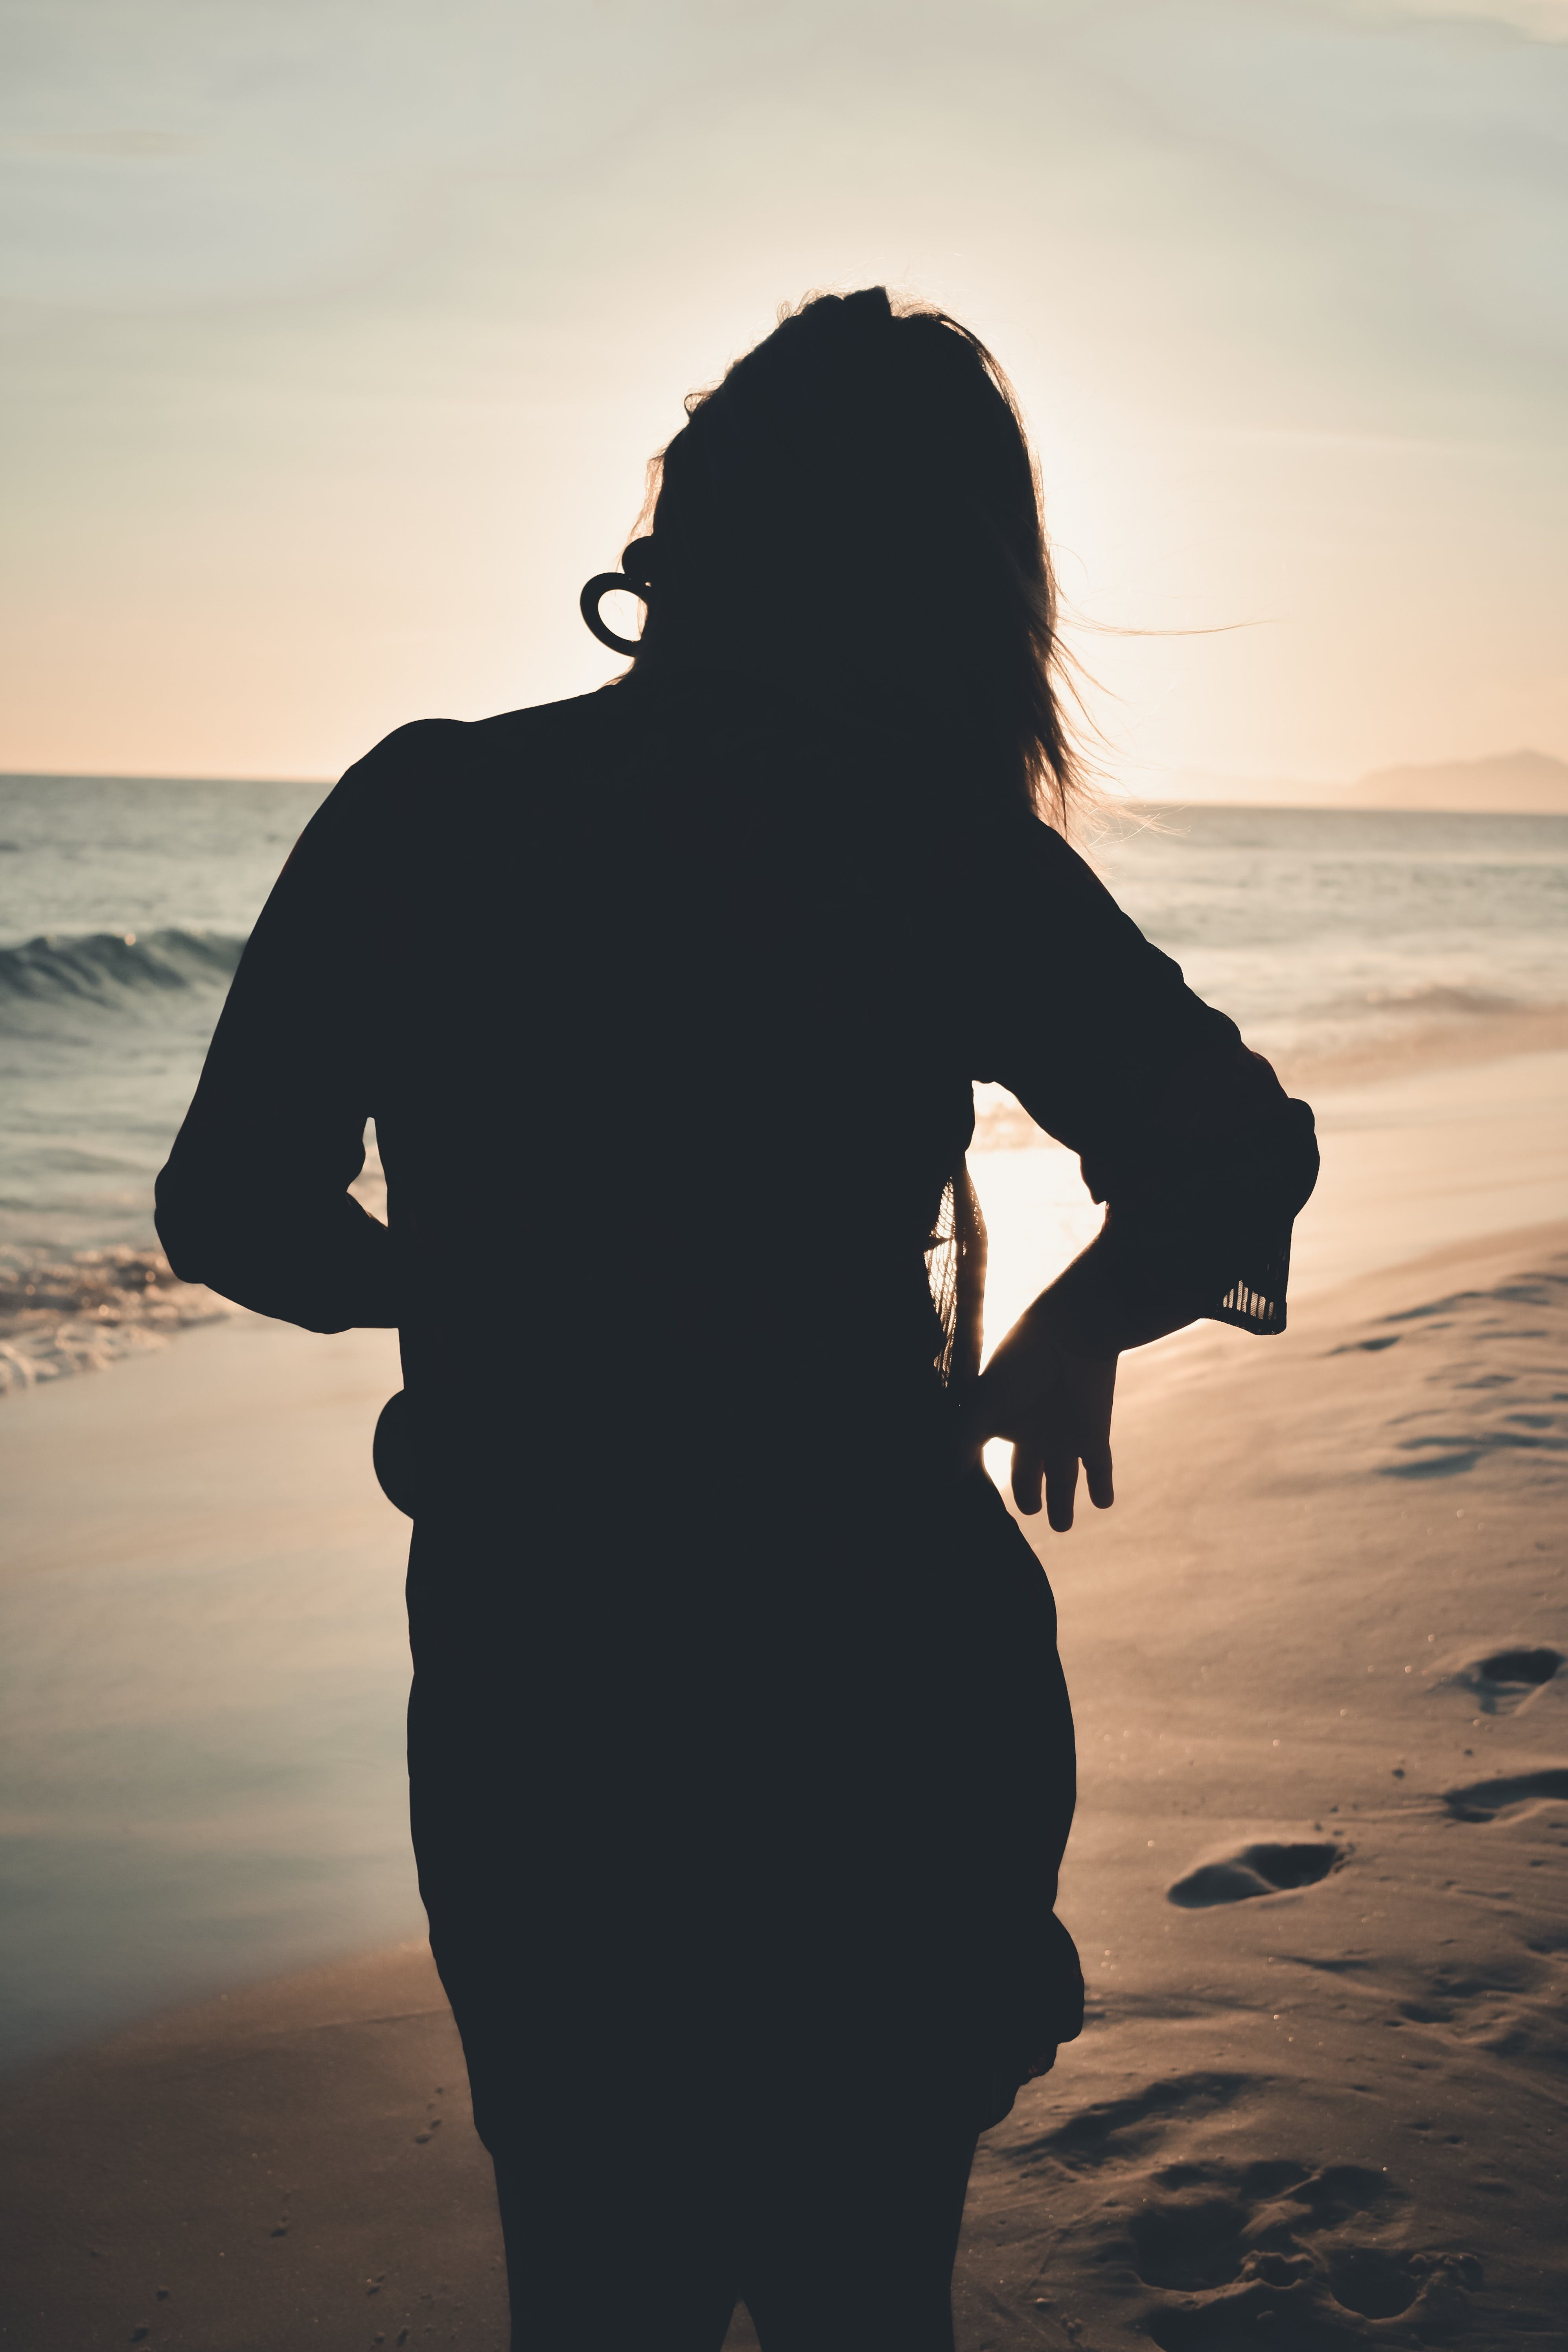 Silhouette Photography of Girl Standing on Shore